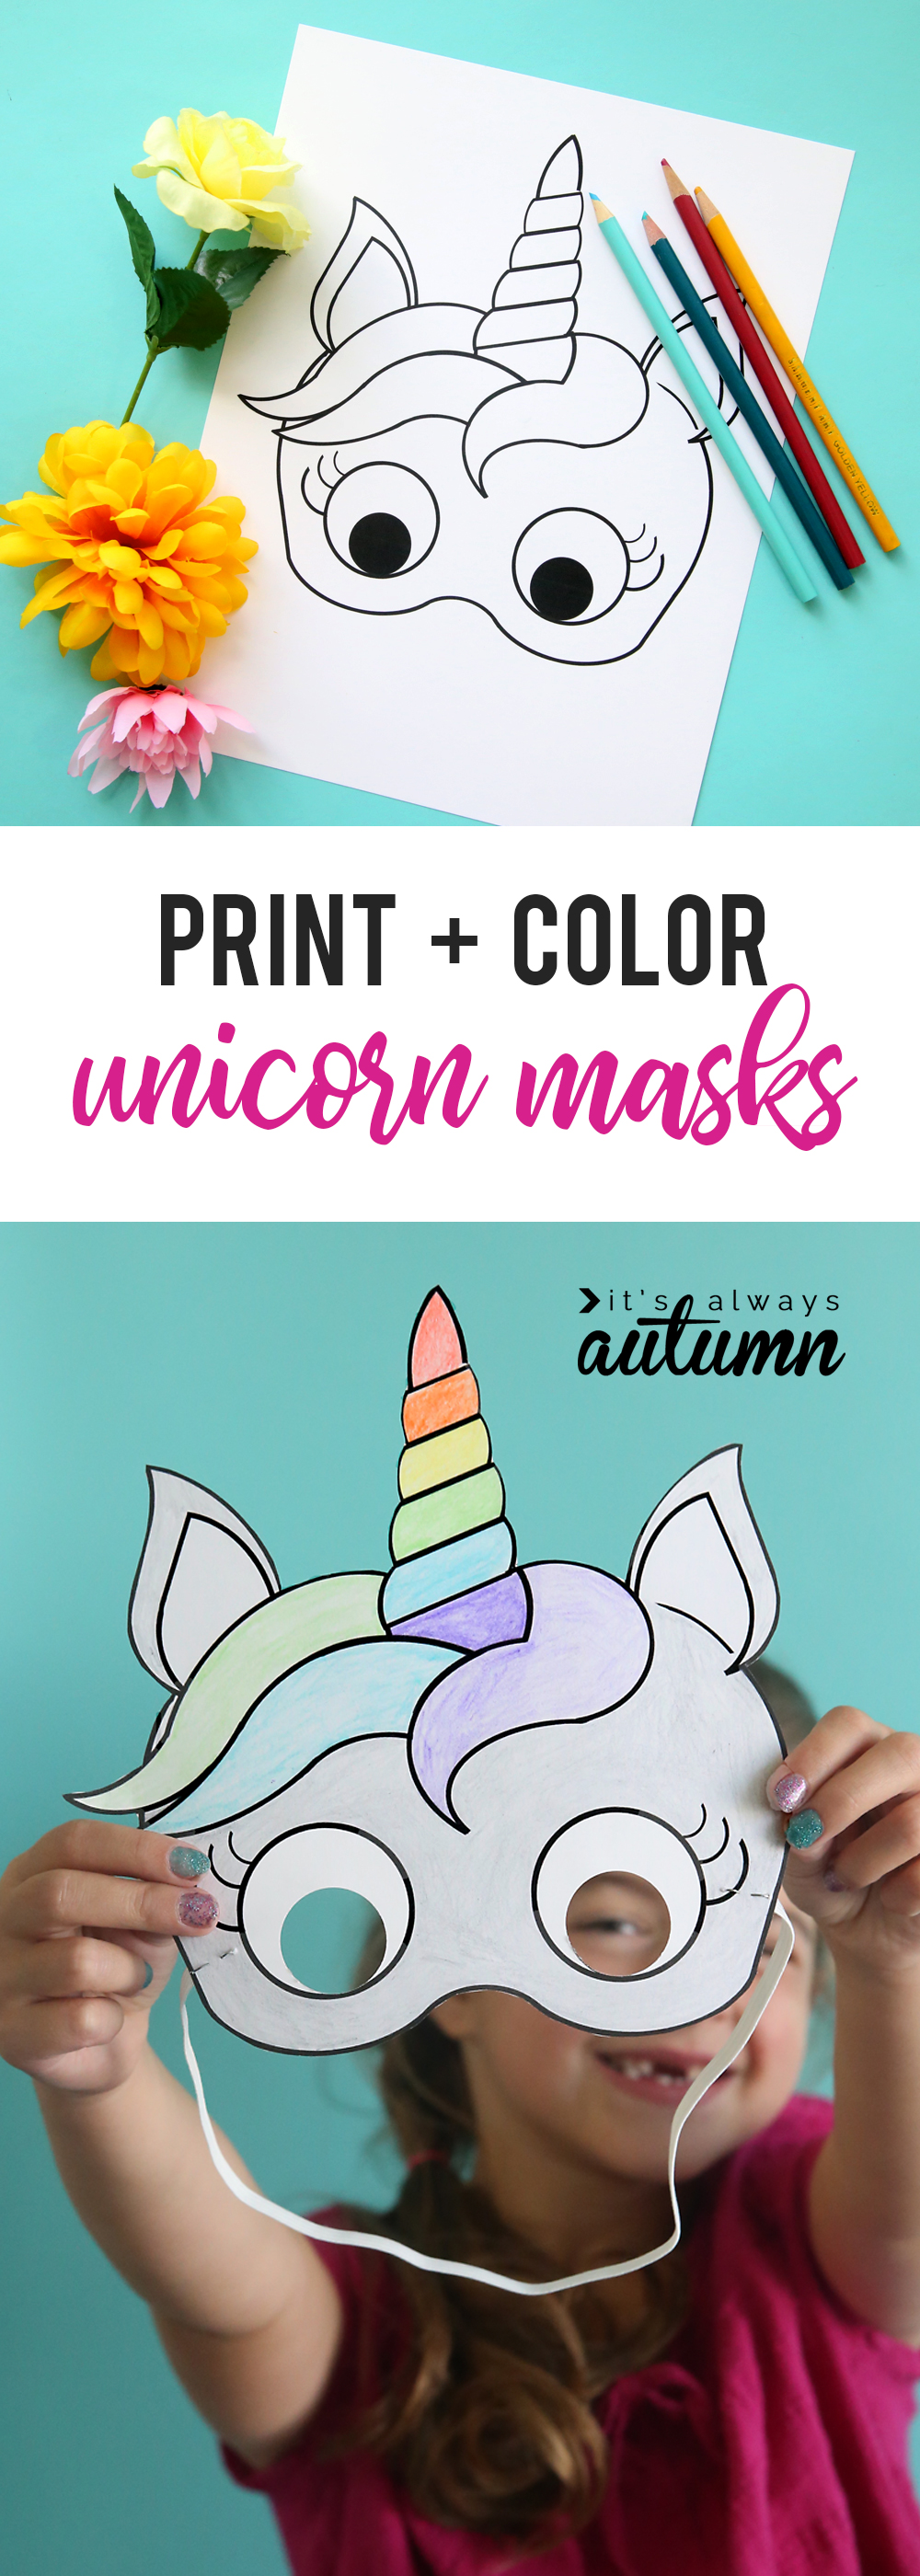 DIY halloween mask in the shape of a unicorn